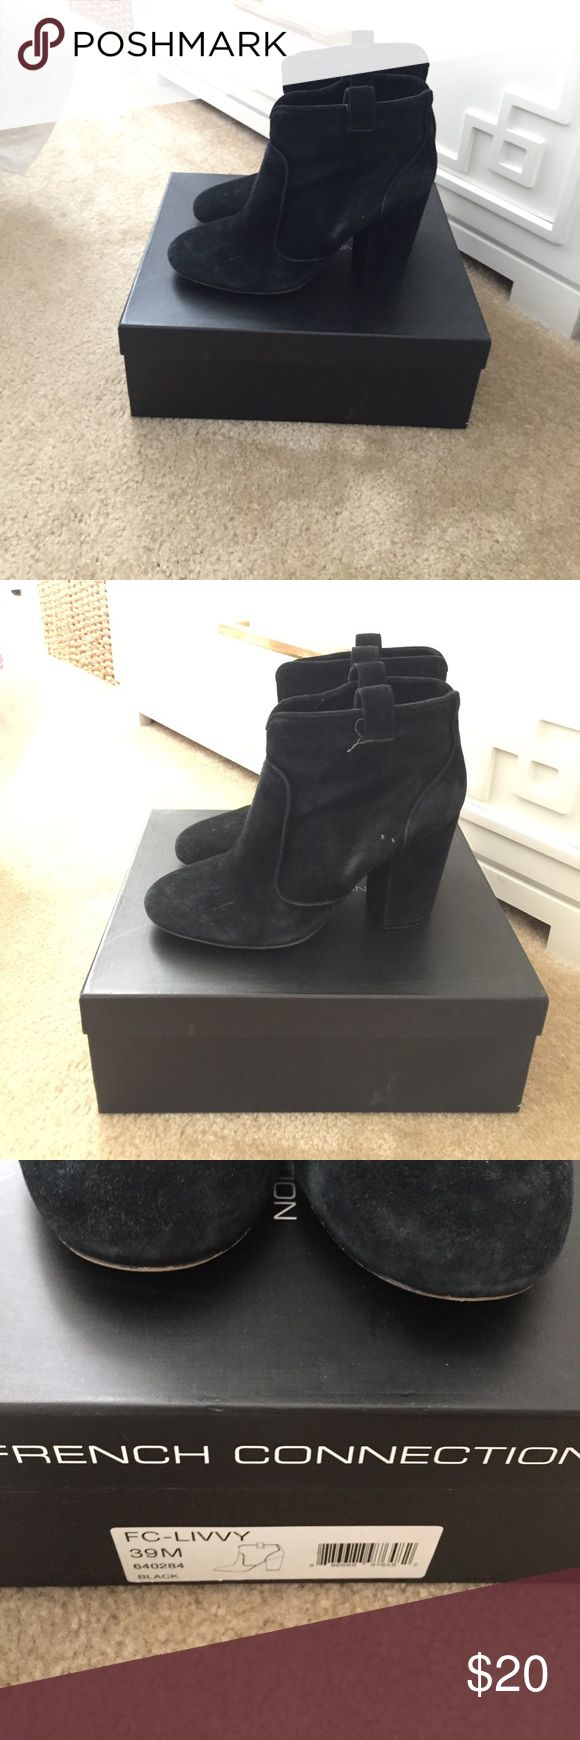 French connection booties Good condition. Very versatile. Black suede. French Connection Shoes Ankle Boots & Booties